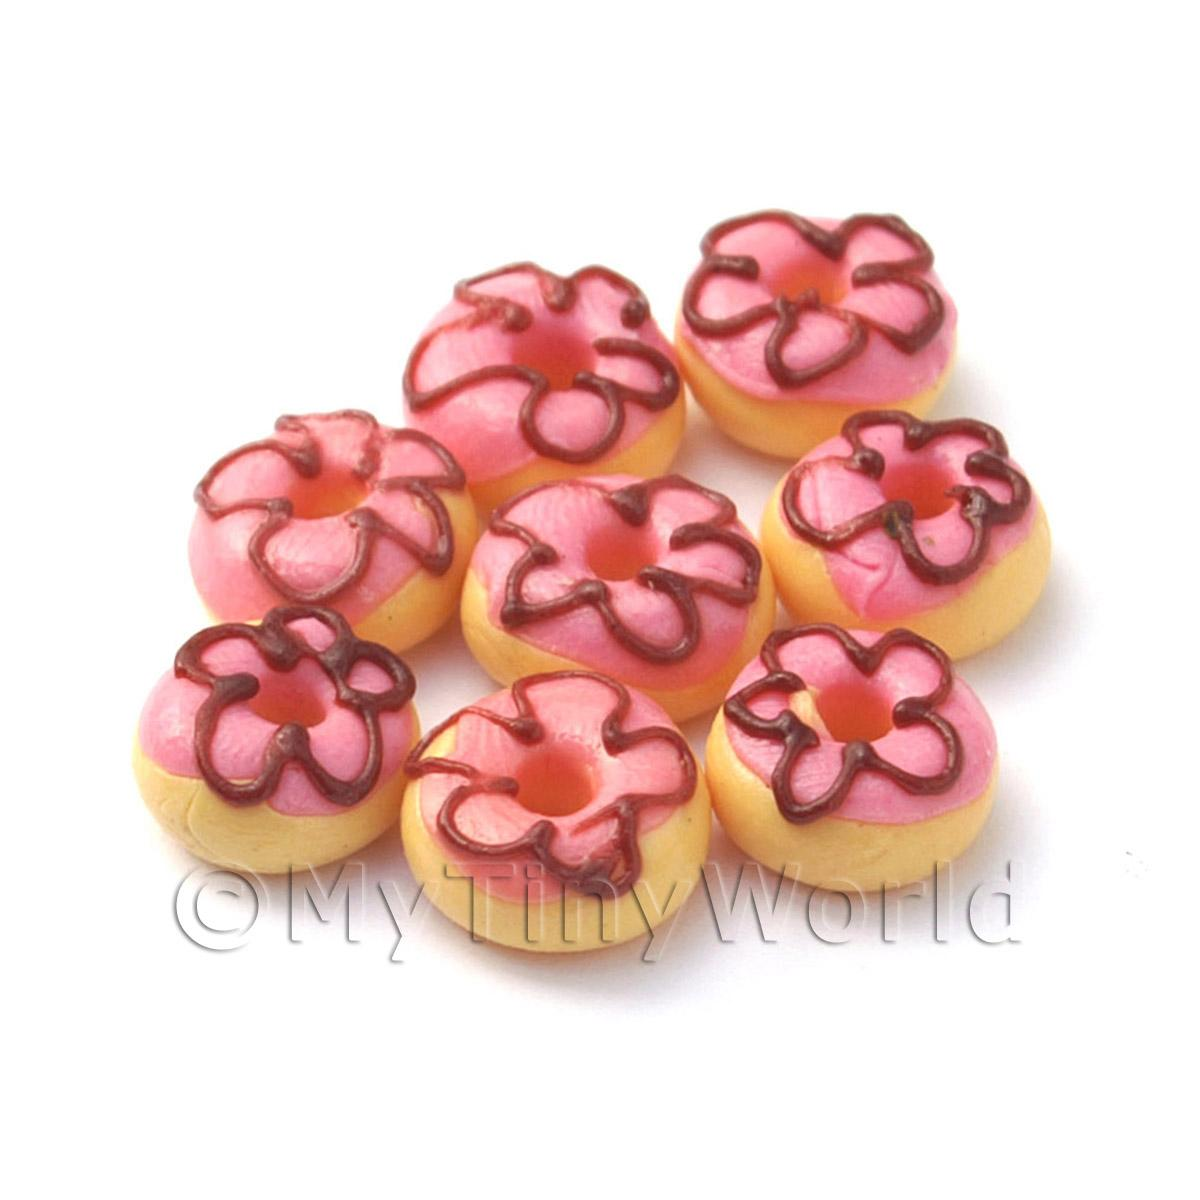 Dolls House Miniature Pink Iced Flower Donut